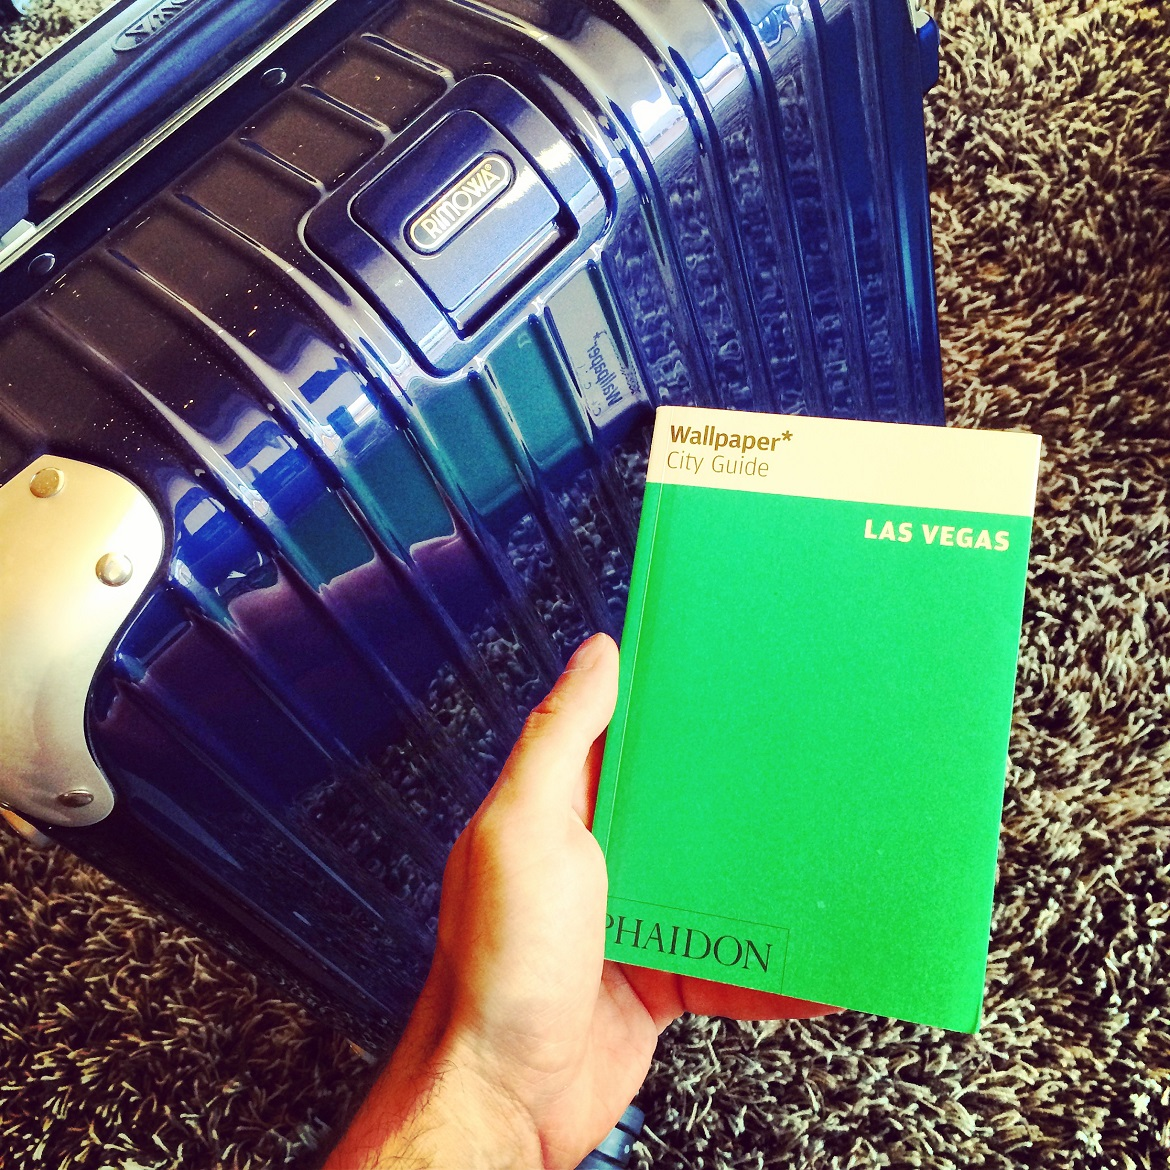 1st important step to #dimitrisgoestoLasVegas: Get the right (Rimowa) suitcase!